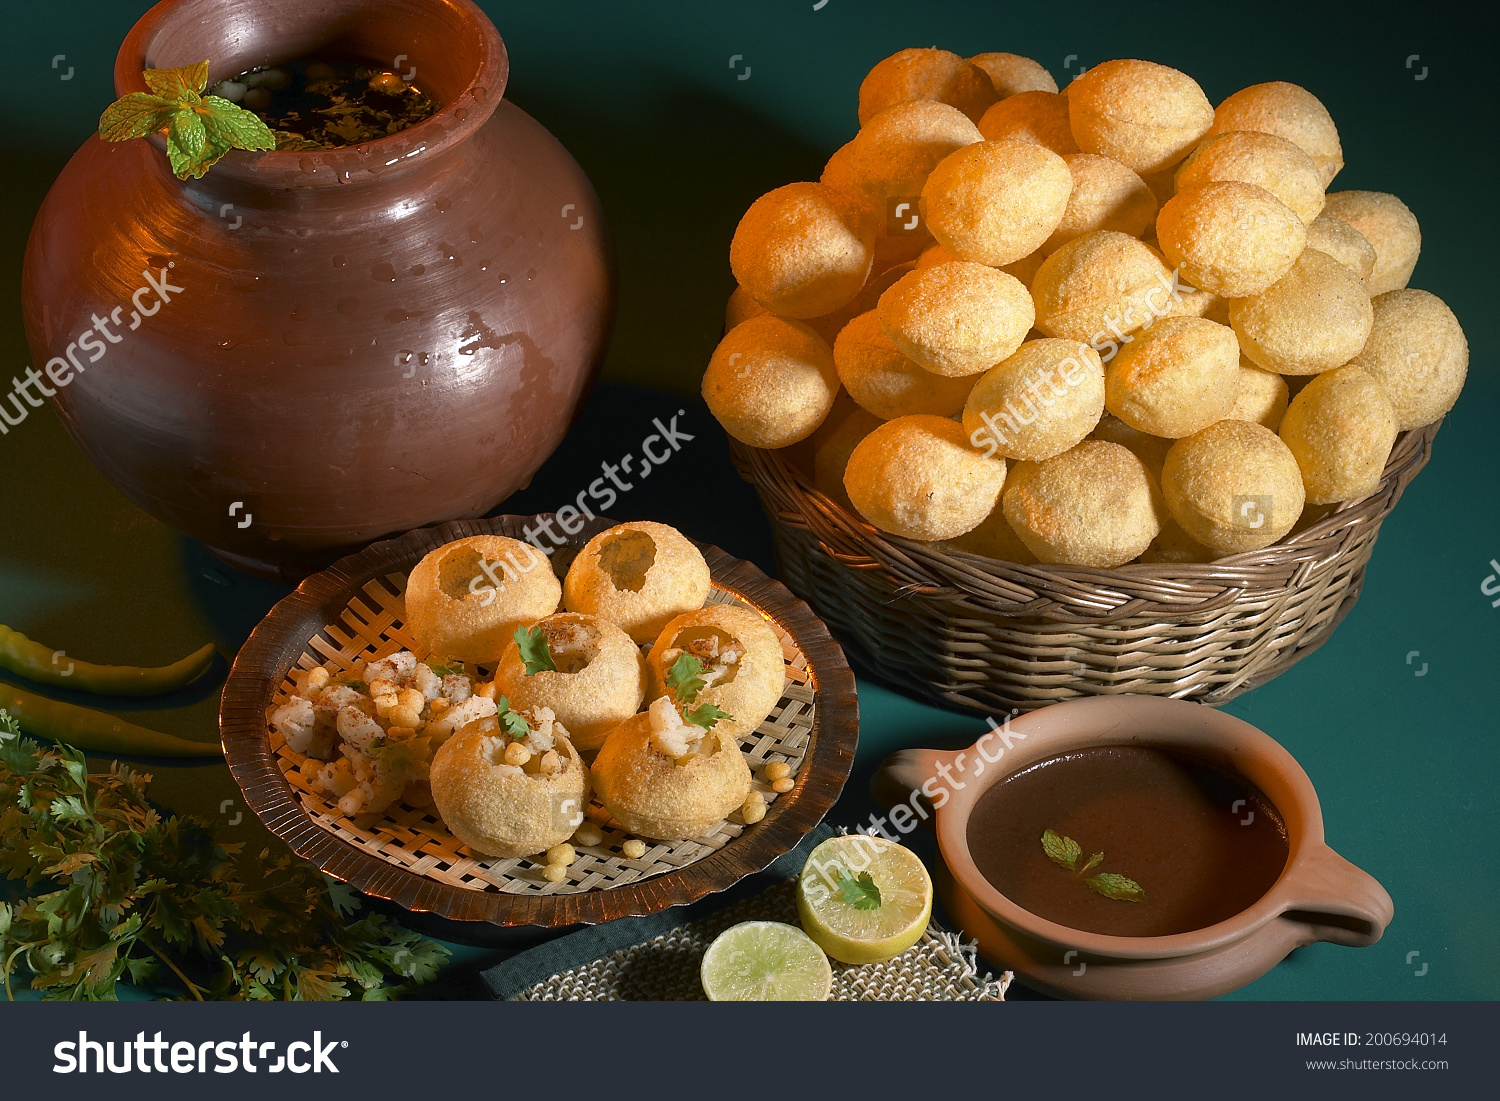 Pani Puri Golgappe Chat Item India Stock Photo 200694014.